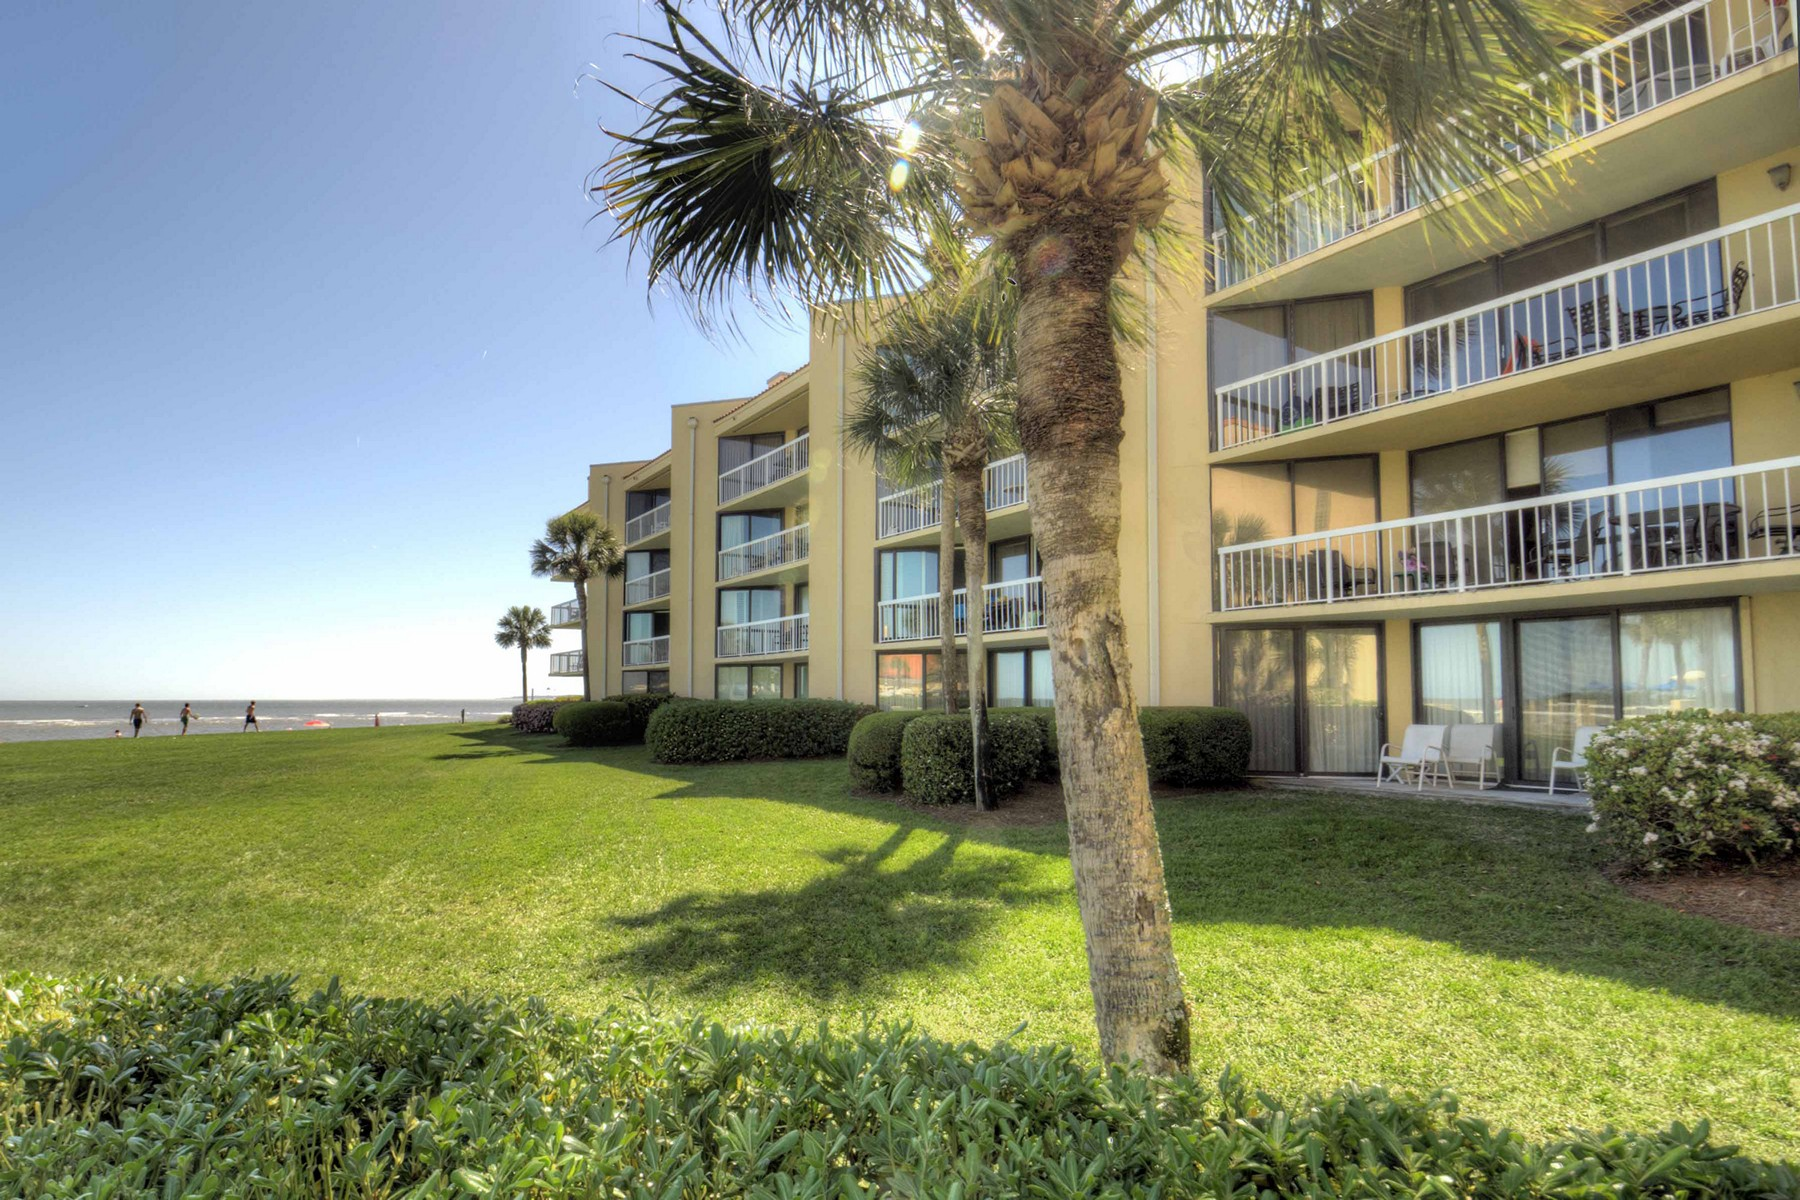 共管物業 為 出售 在 #347 King and Prince 201 Neptune Road Unit 347, St. Simons Island, 喬治亞州, 31522 美國